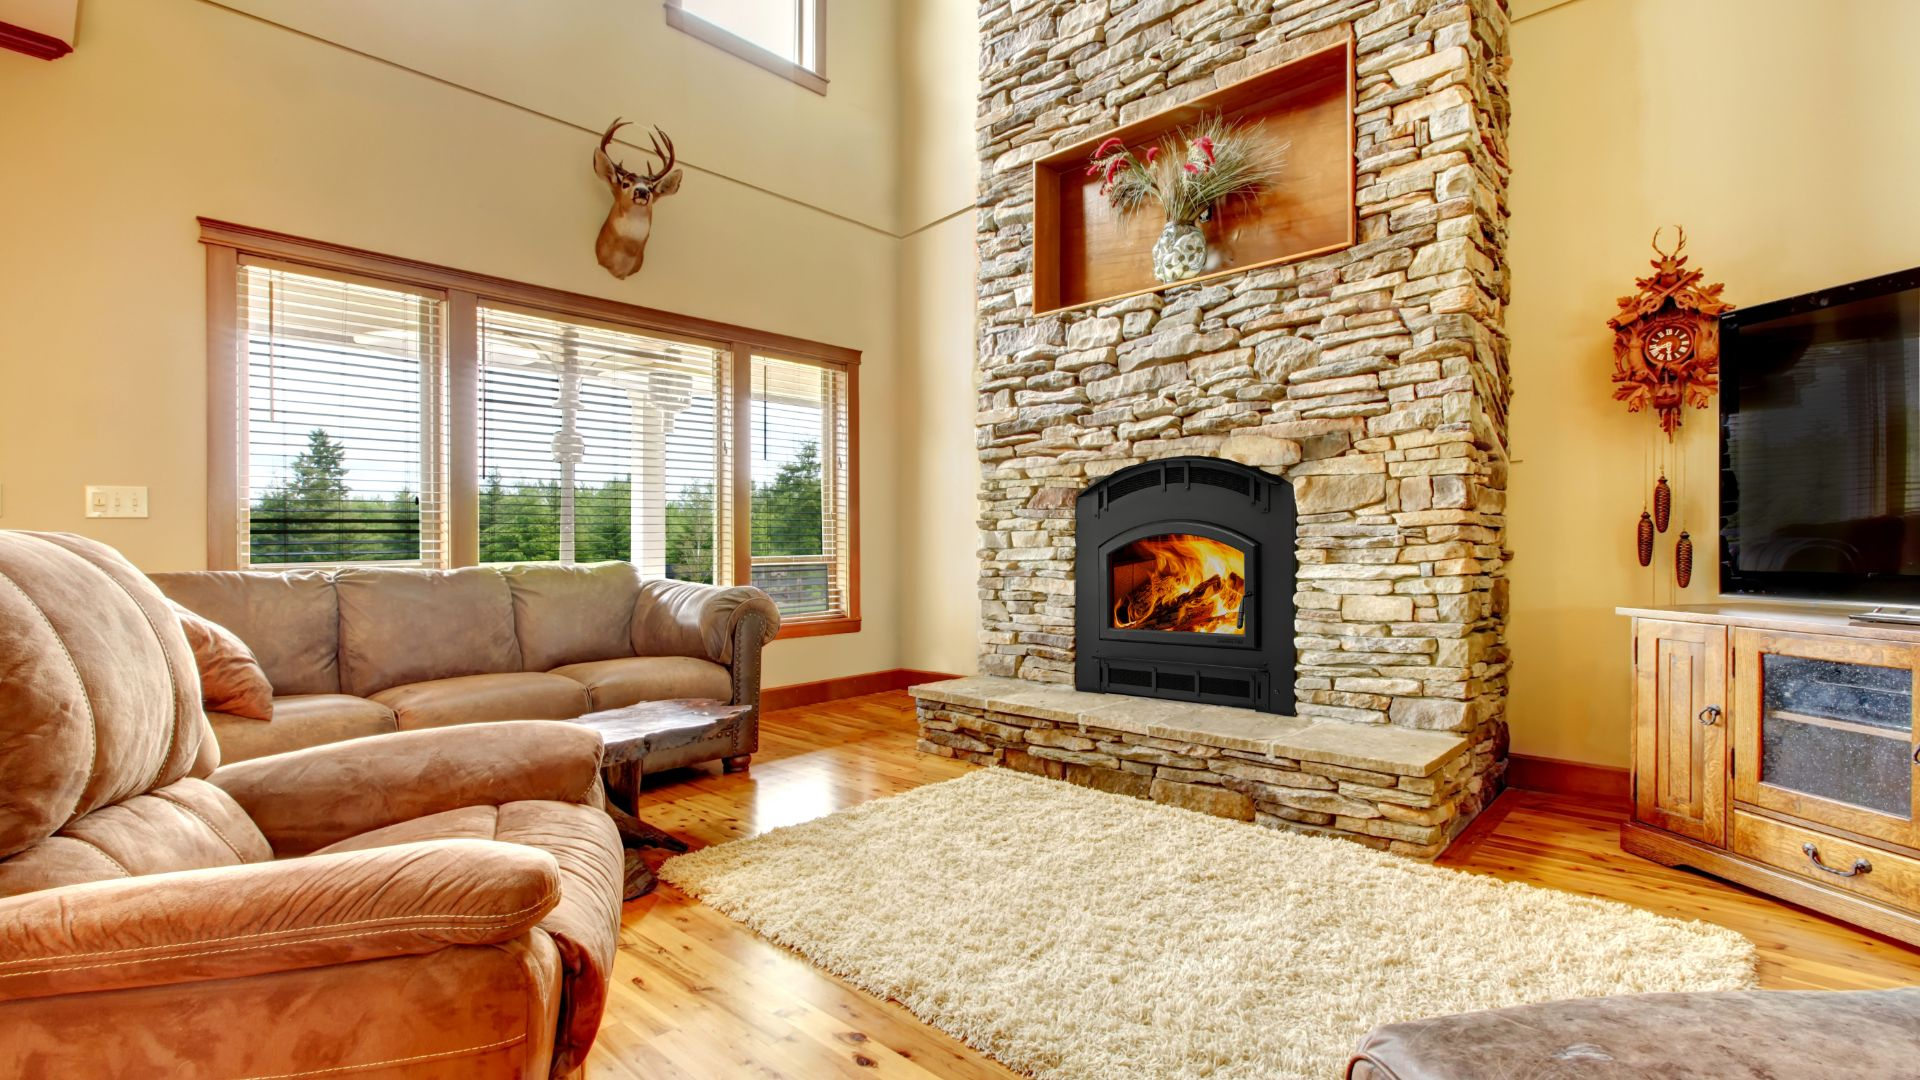 When is the Best Time of Year to Install a Fireplace in Kansas?